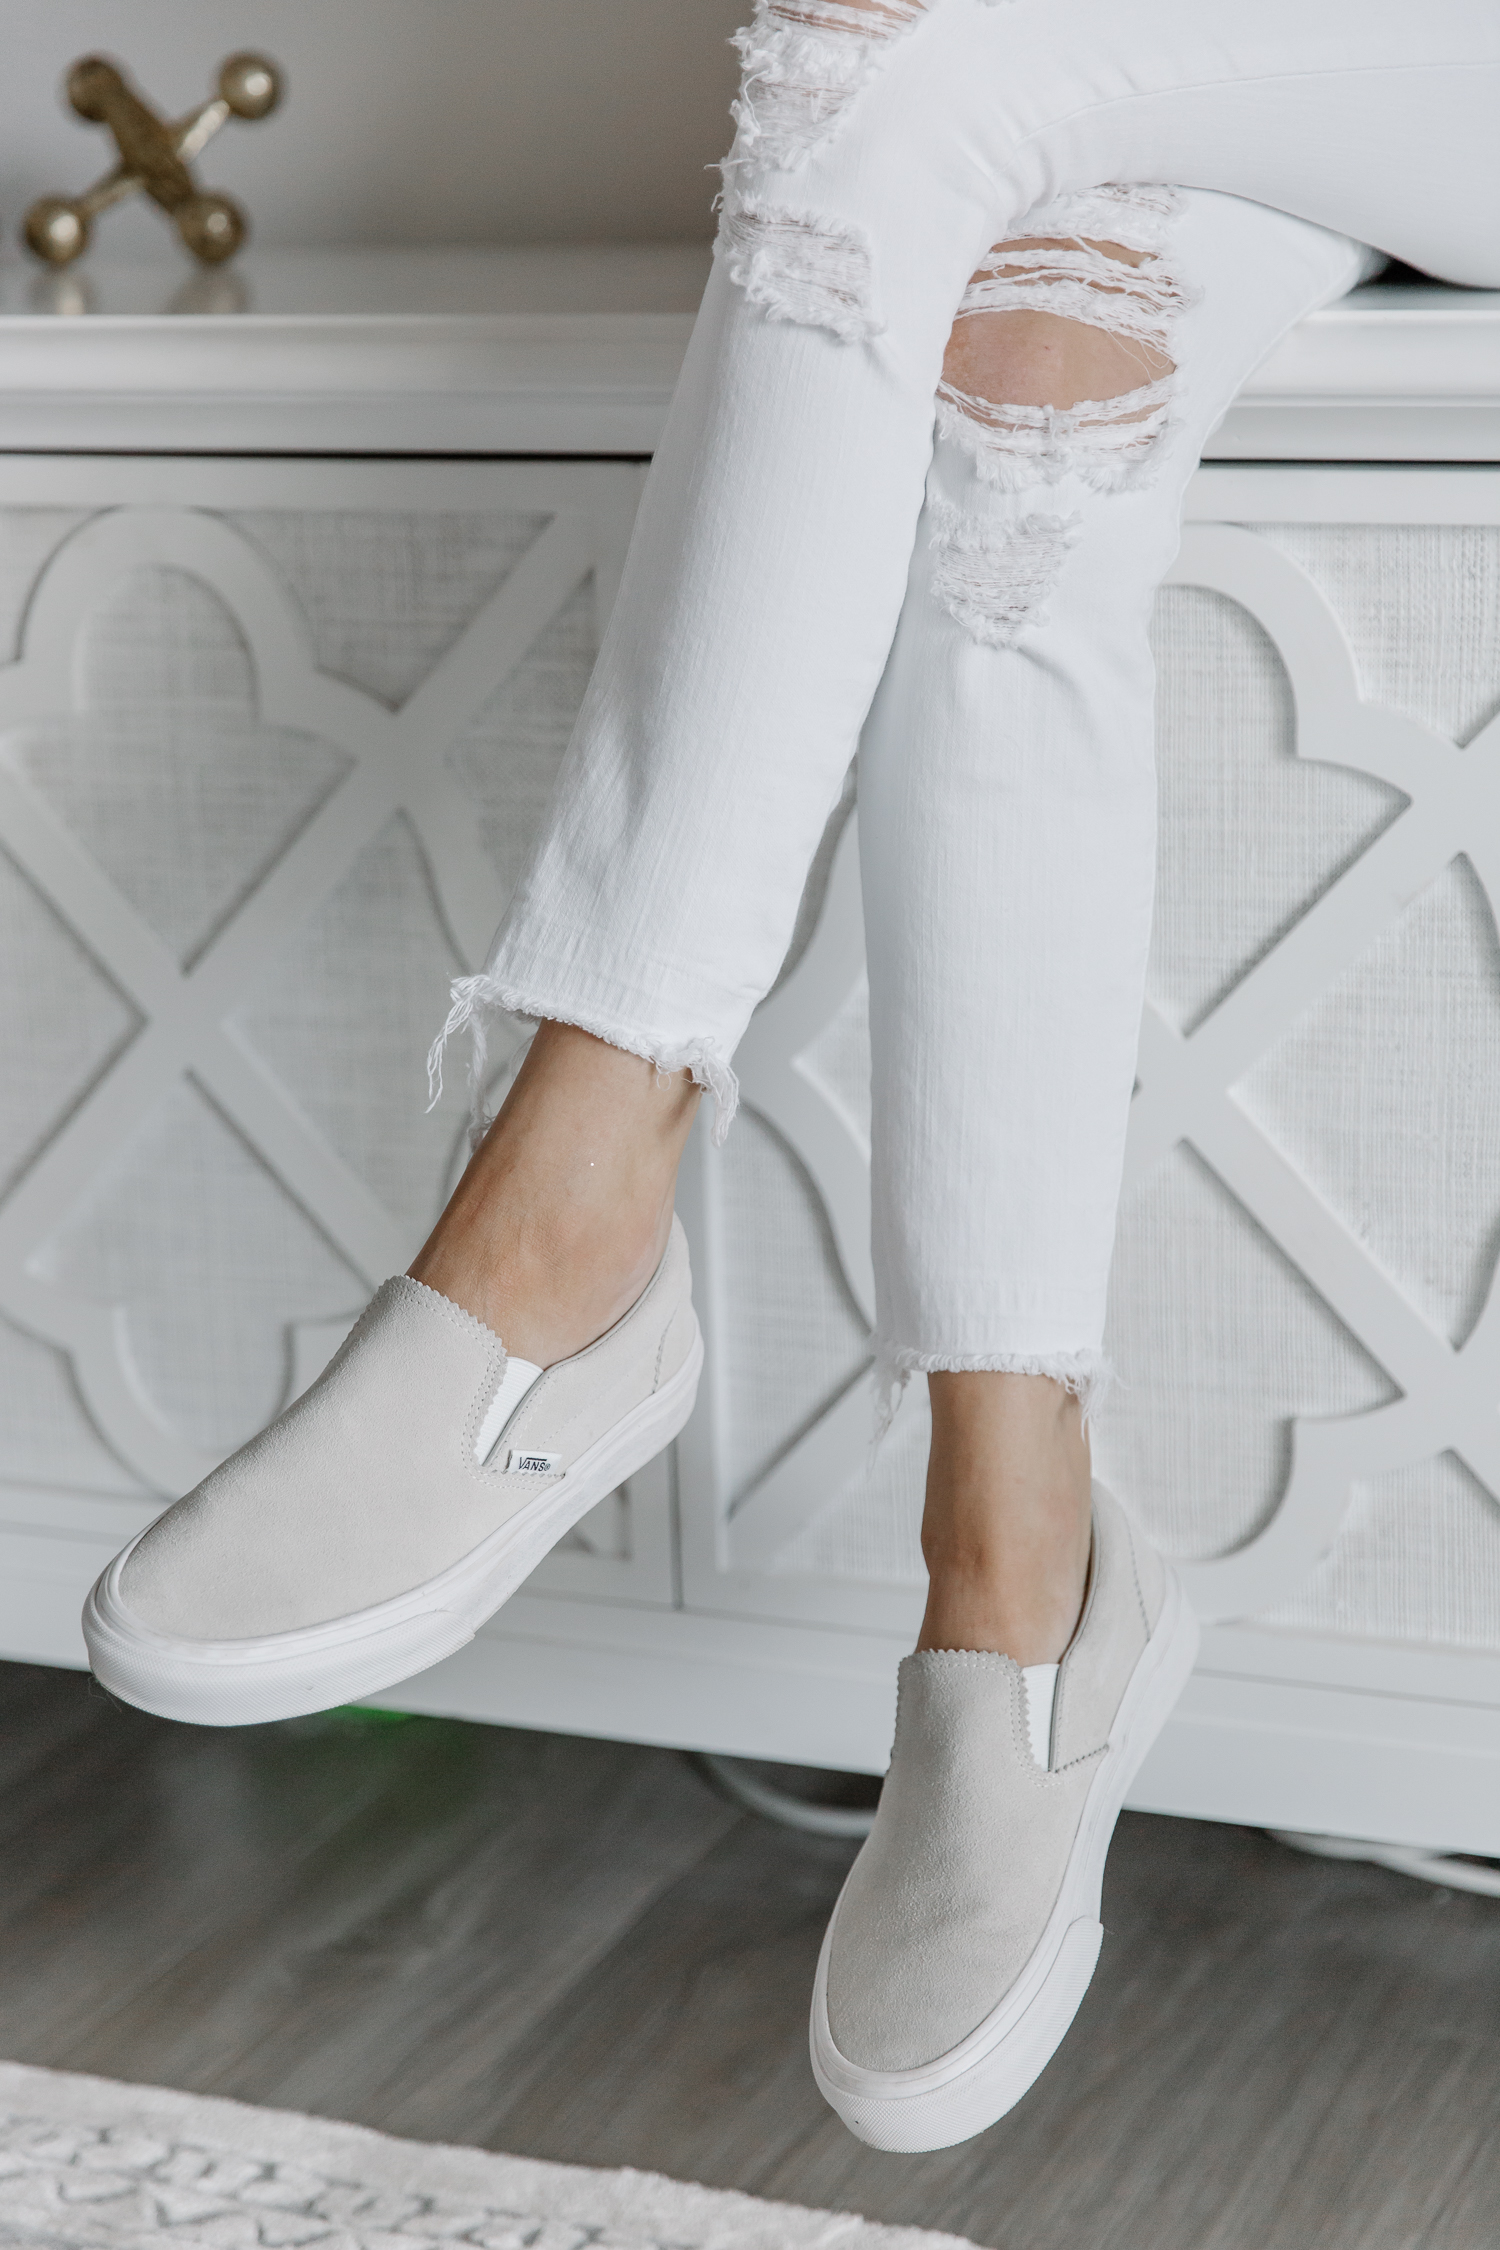 travel shoes, good shoes for travel, summer travel shoes, spring travel shoes, shoes, tory burch, travel, vans, nike